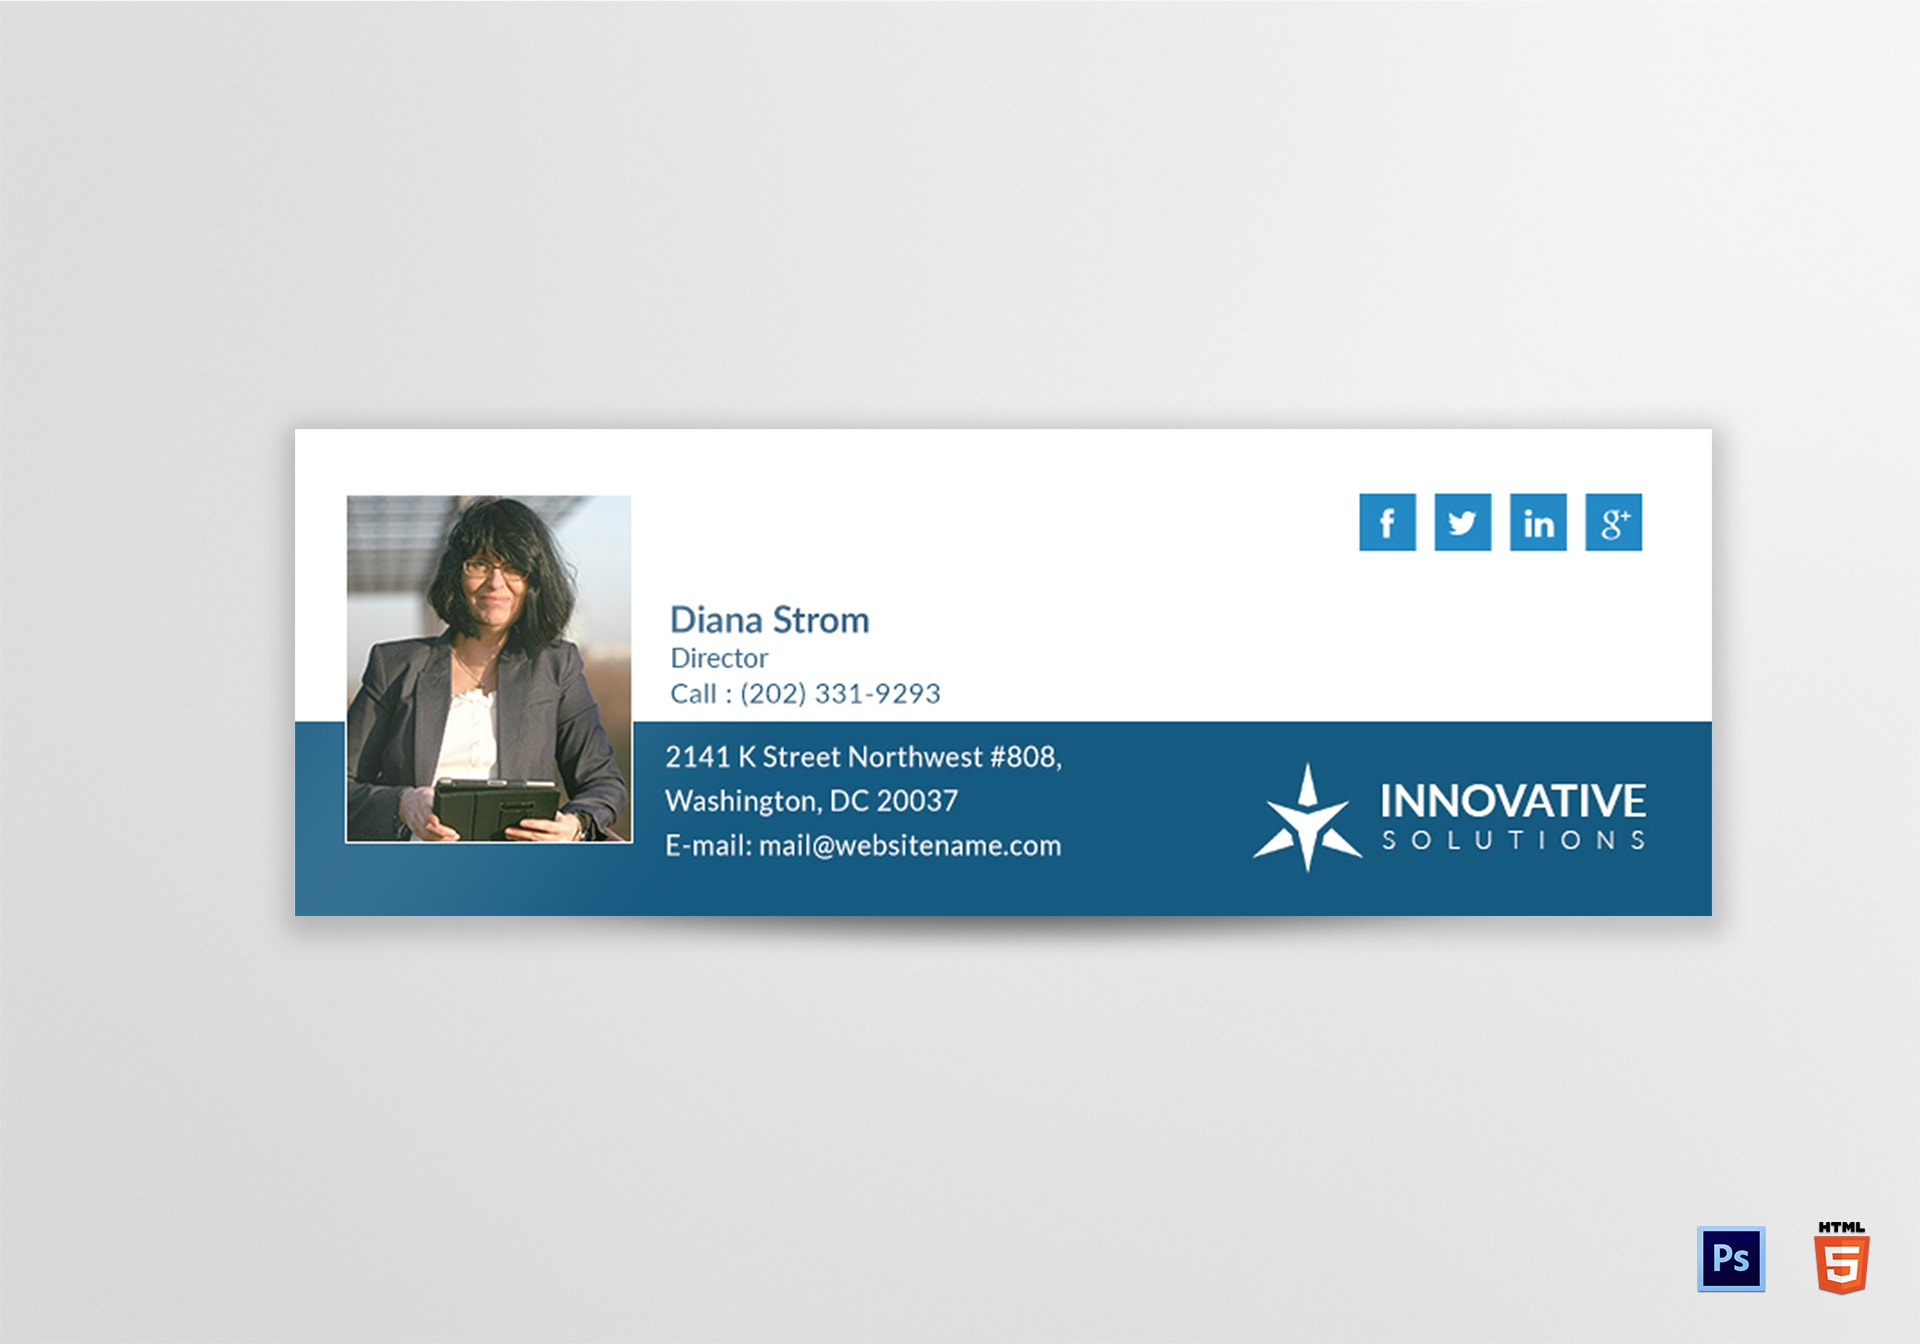 innovative solutions email signature sample